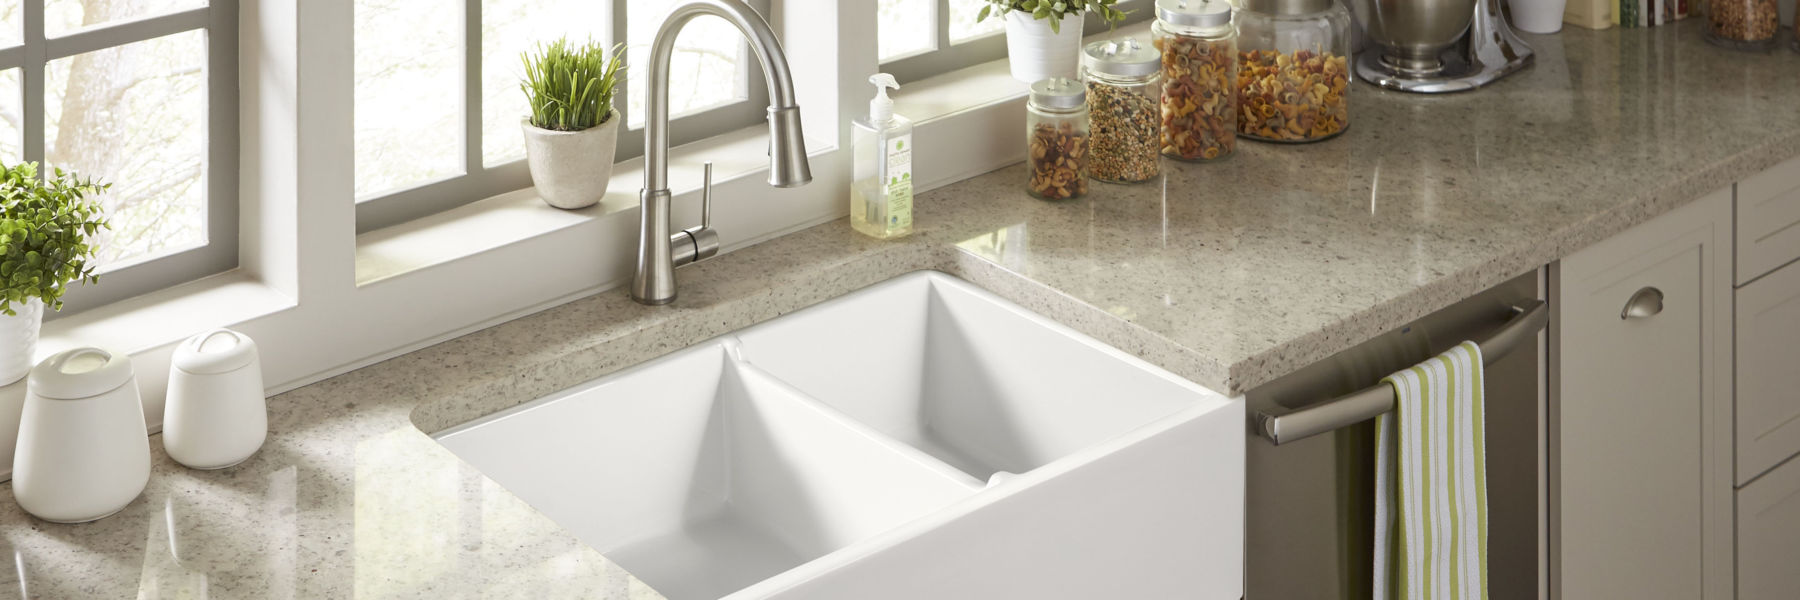 Fireclay Farmhouse Kitchen Sink White Brooks